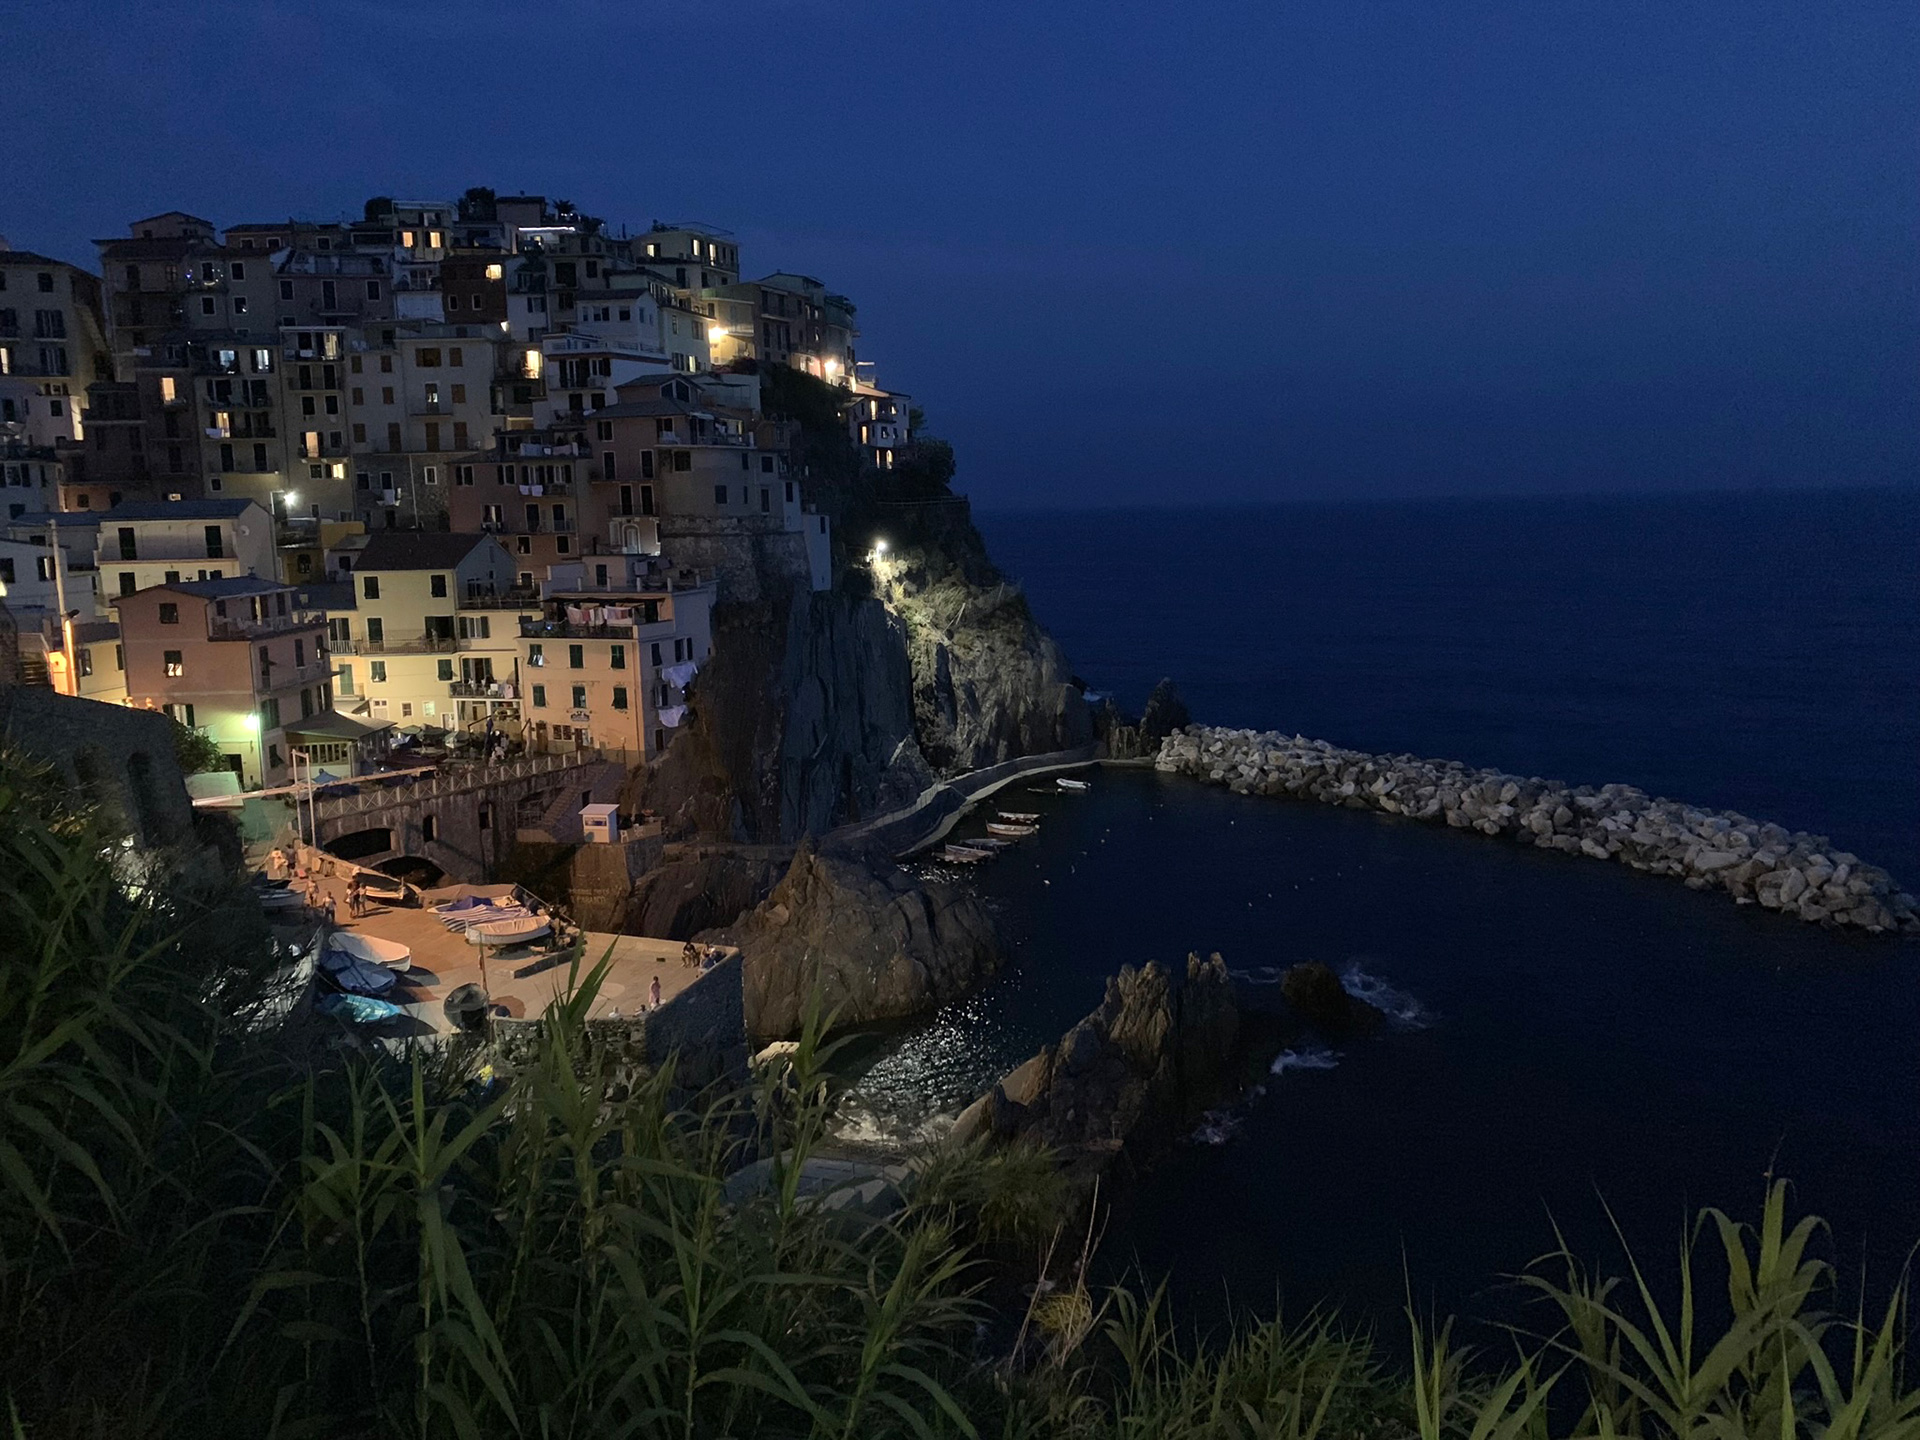 The village of Manarola at night | Cinque Terre| Italy| STIR